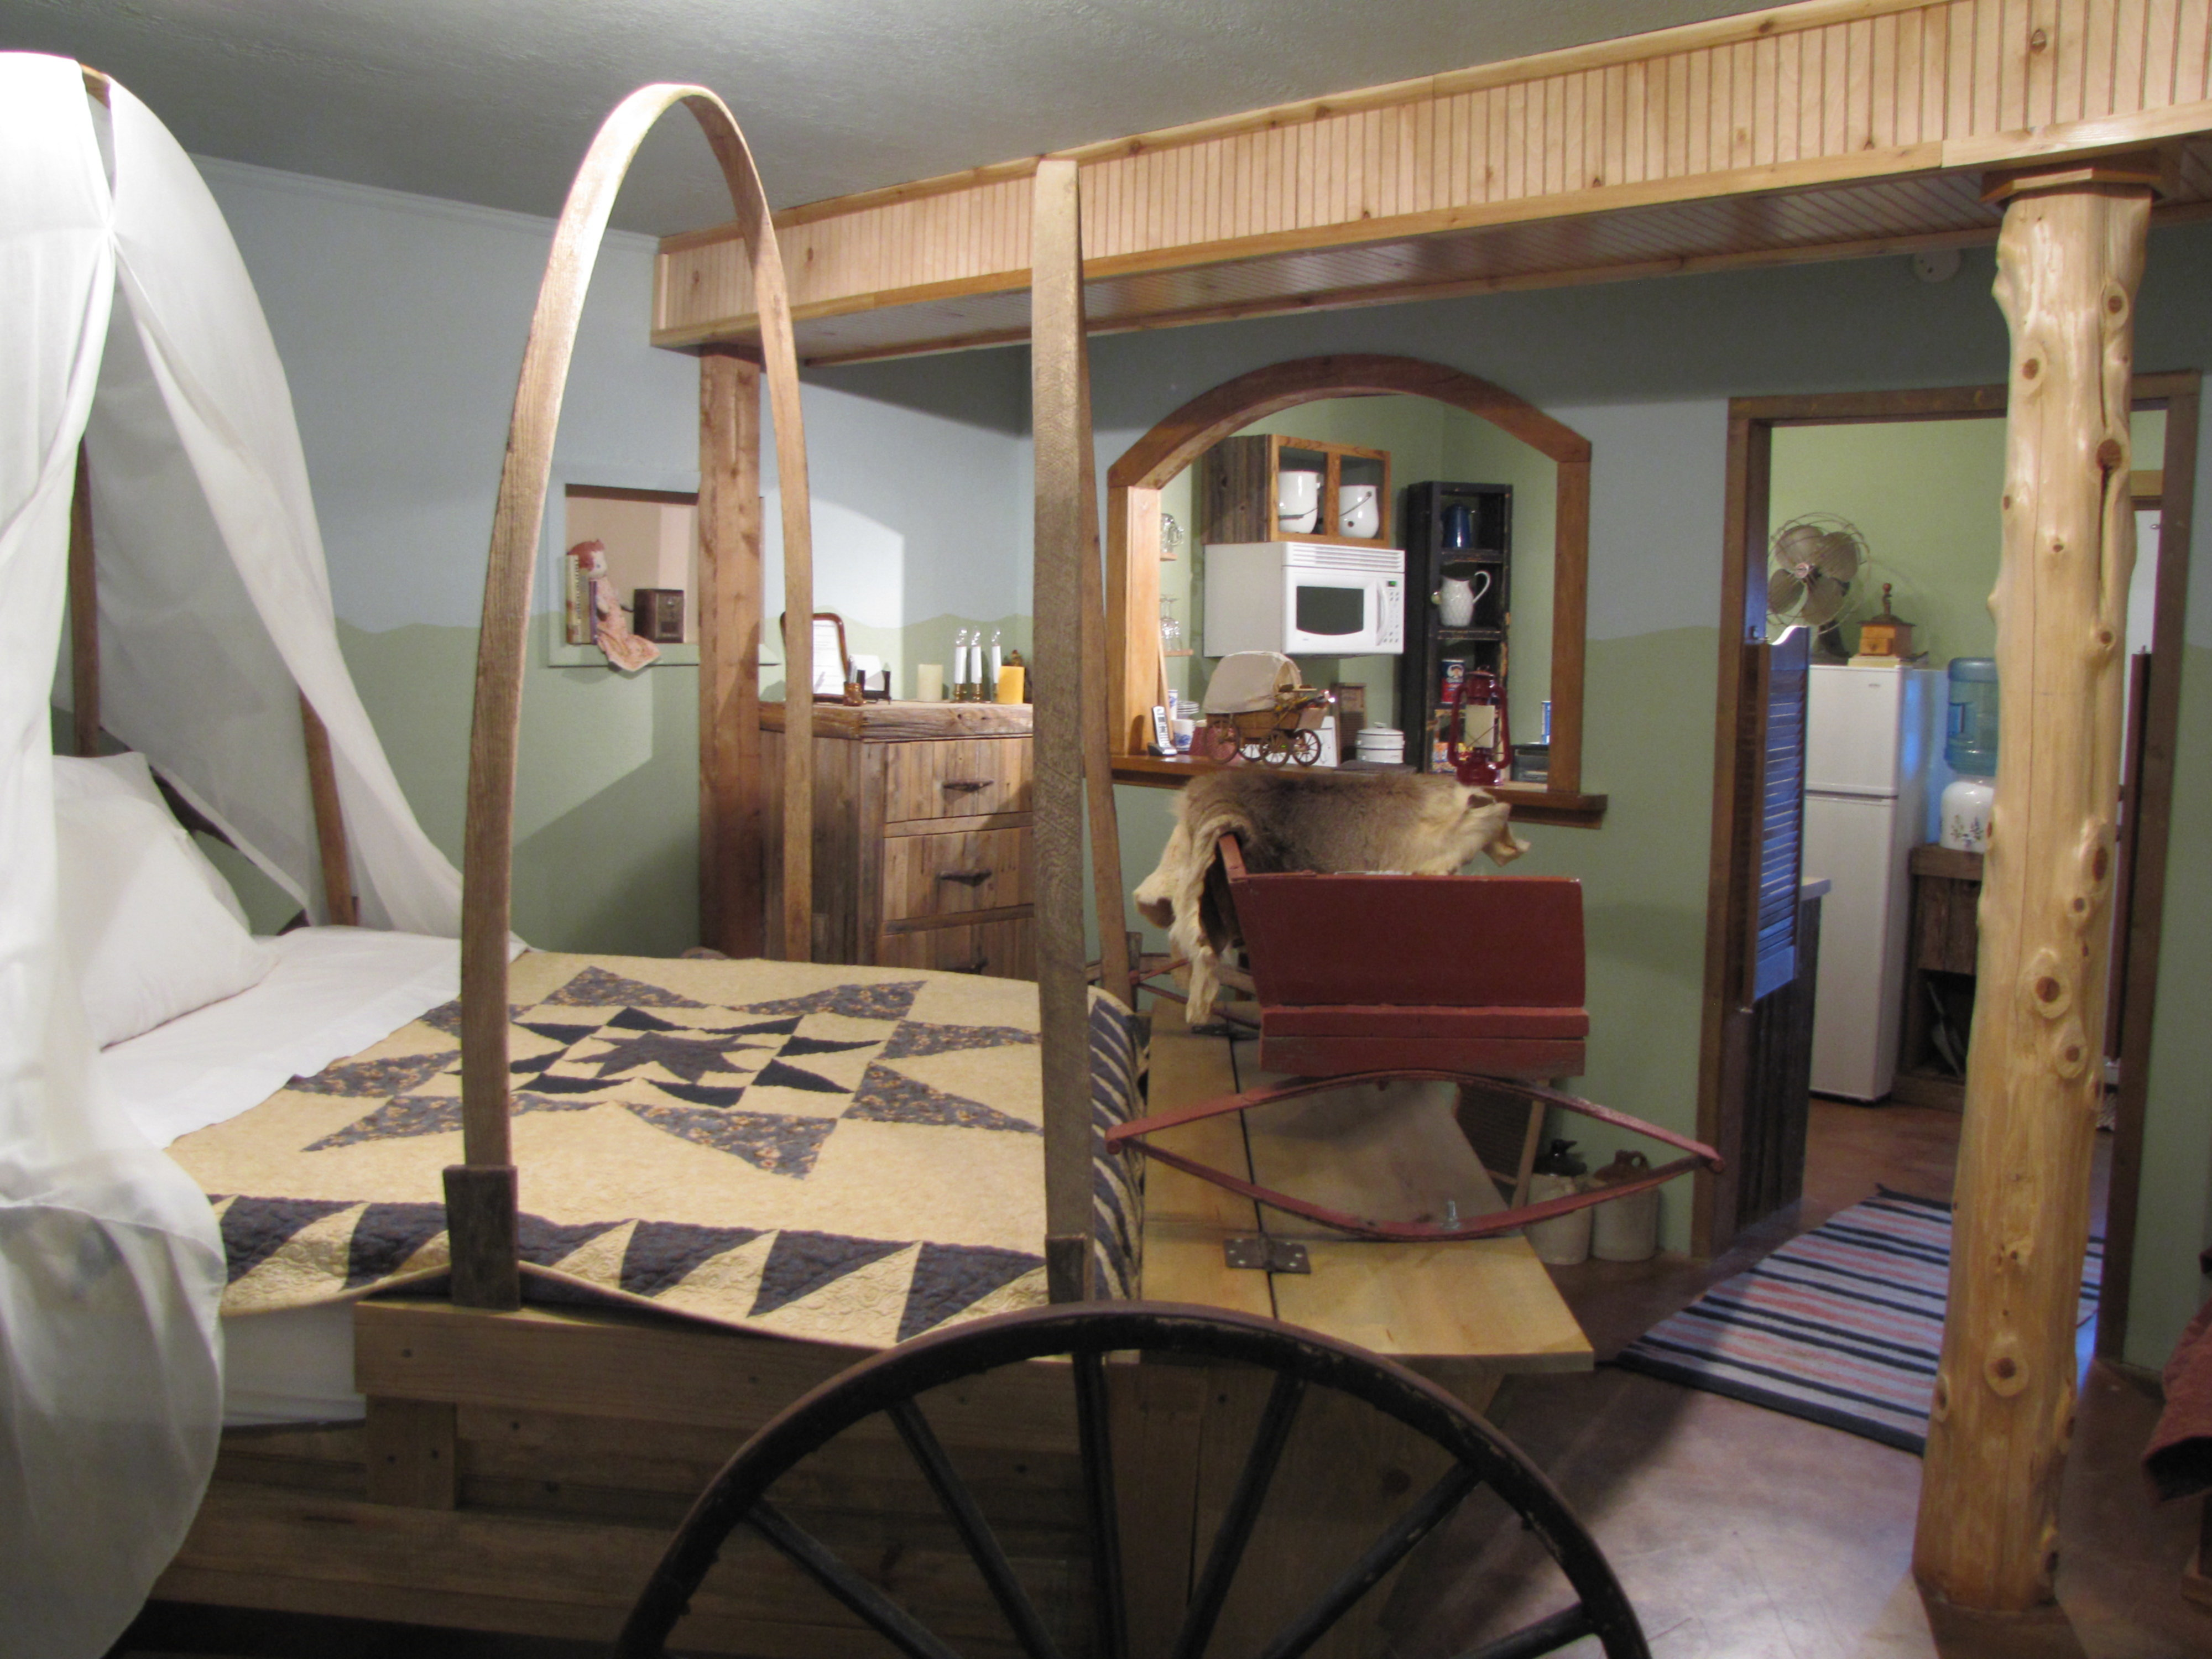 A bedroom with a bed and a chair in a room at Covered Wagon Guesthouse/B&B.